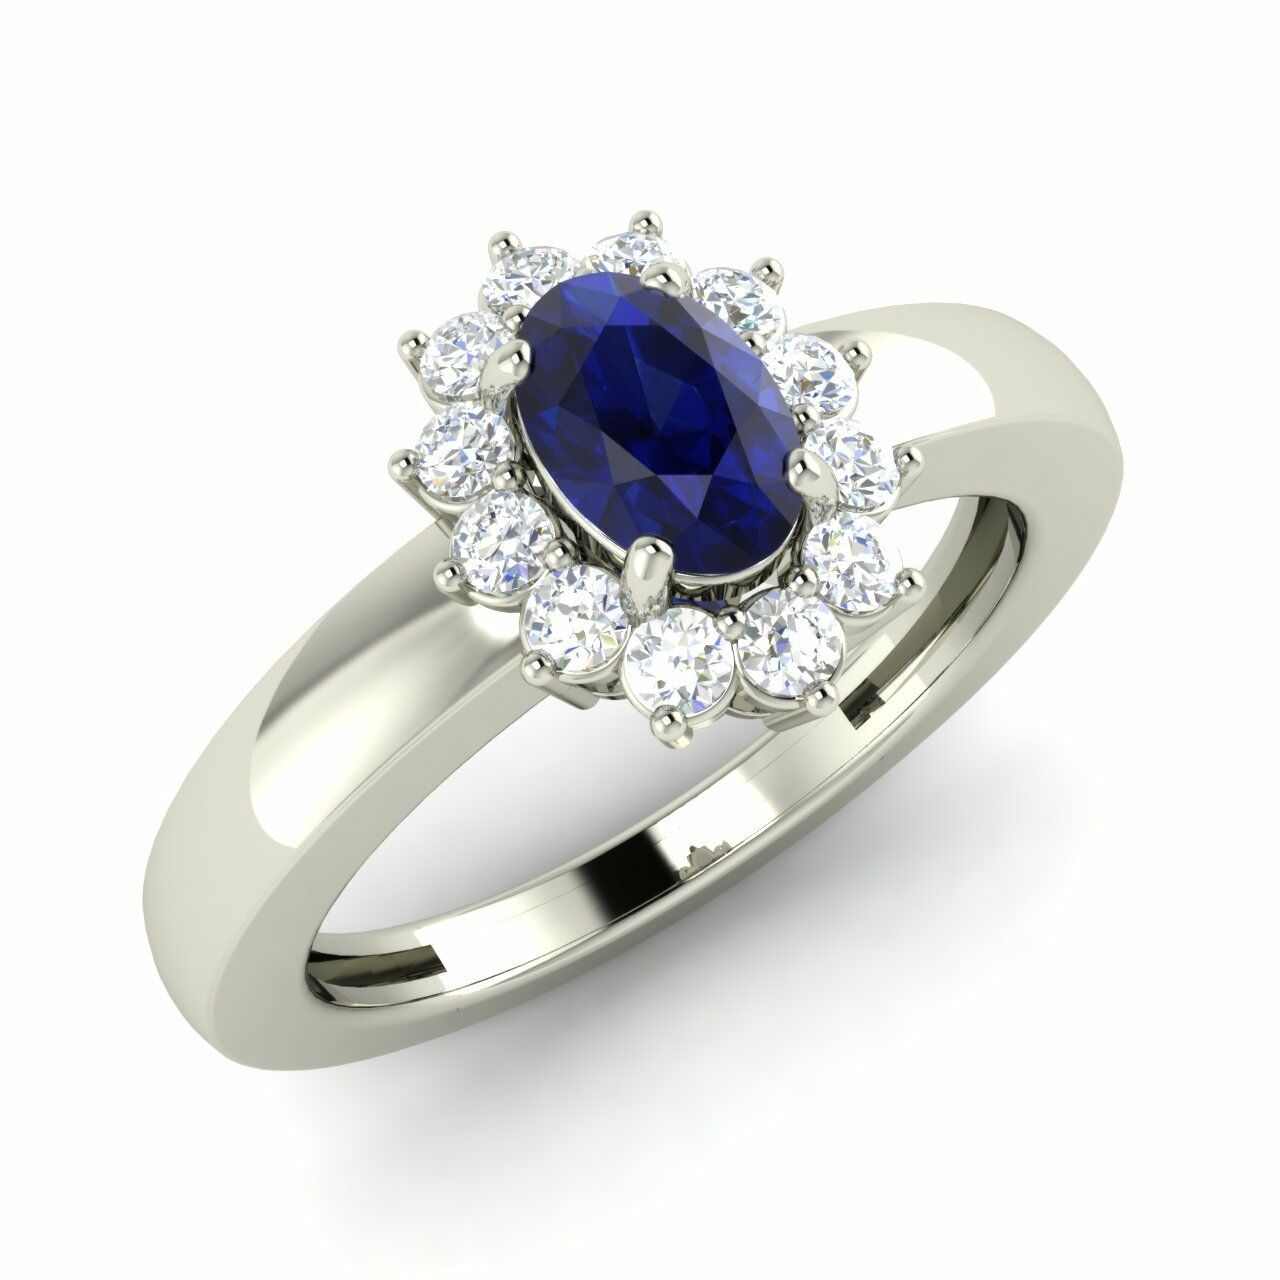 Certified 0.82 Cts Oval Cut bluee Sapphire & Diamonds Halo Ring Size 5, 6, 7, 8 9